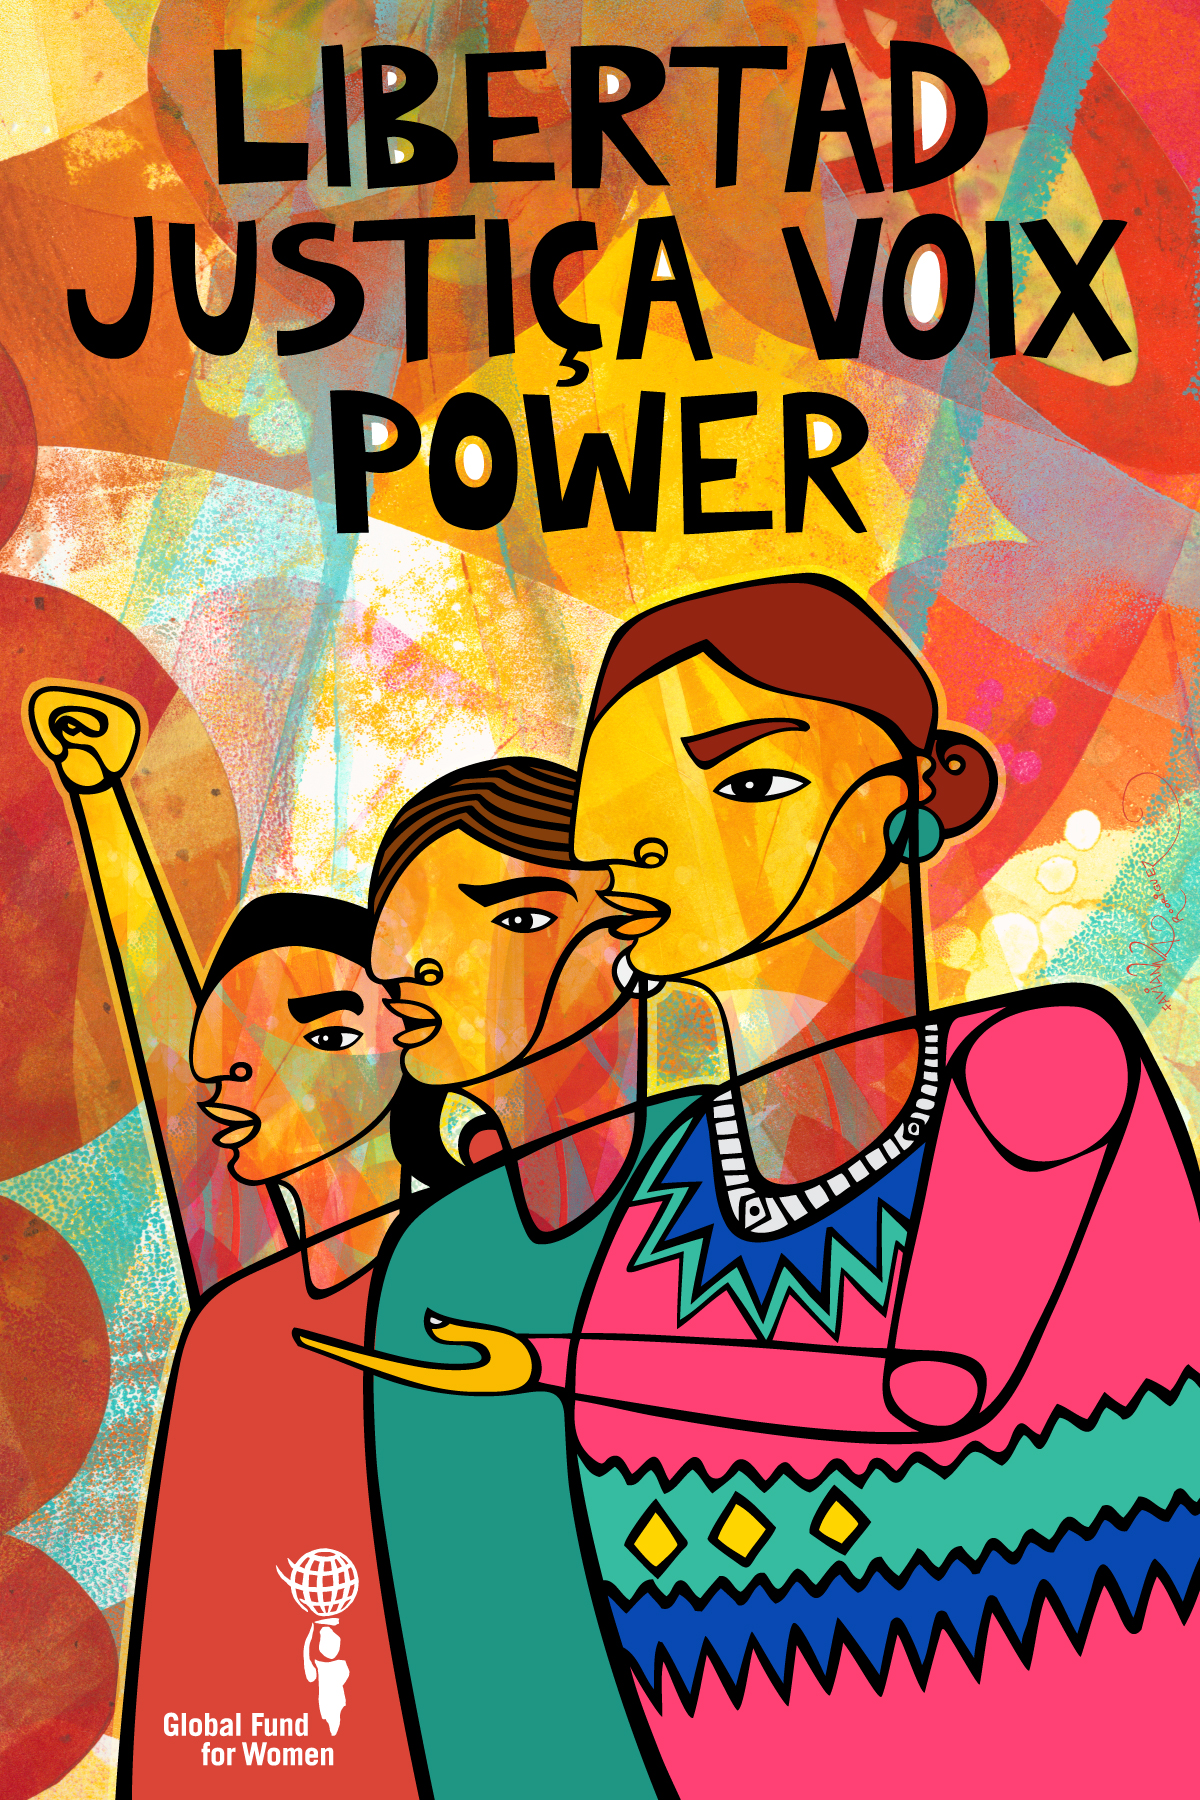 Art + Activism = Infinite Power. Sharing in a collective workshop on merging art with activism led by Board Member Amina Doherty and social justice artist Favianna Rodriguez, participants helped create this powerful piece of original art as well as creative posters of their own.